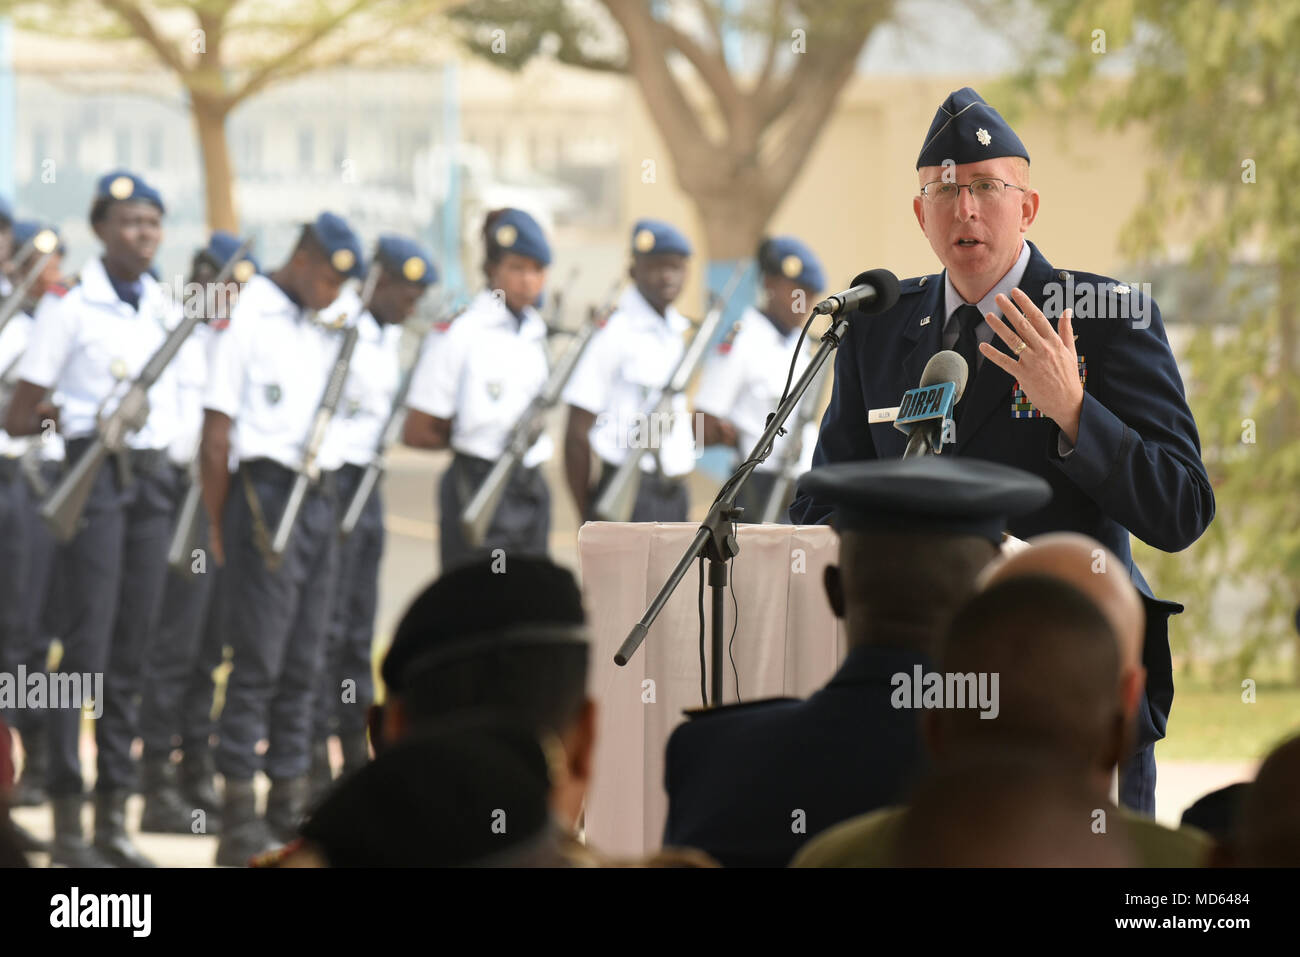 U.S. Air Force Lt. Col. Andrew Allen, chief of global health engagements branch, U.S. Air Forces in Europe and Air Forces Africa, speaks during the closing ceremony of African Partnership Flight Senegal at Captain Andalla Cissé Air Base, Senegal, March 23, 2018. The purpose of APF Senegal is to conduct multilateral, military-to-military engagements and security assistance with African air forces. (U.S. Air Force photo by Airman 1st Class Eli Chevalier) - Stock Image